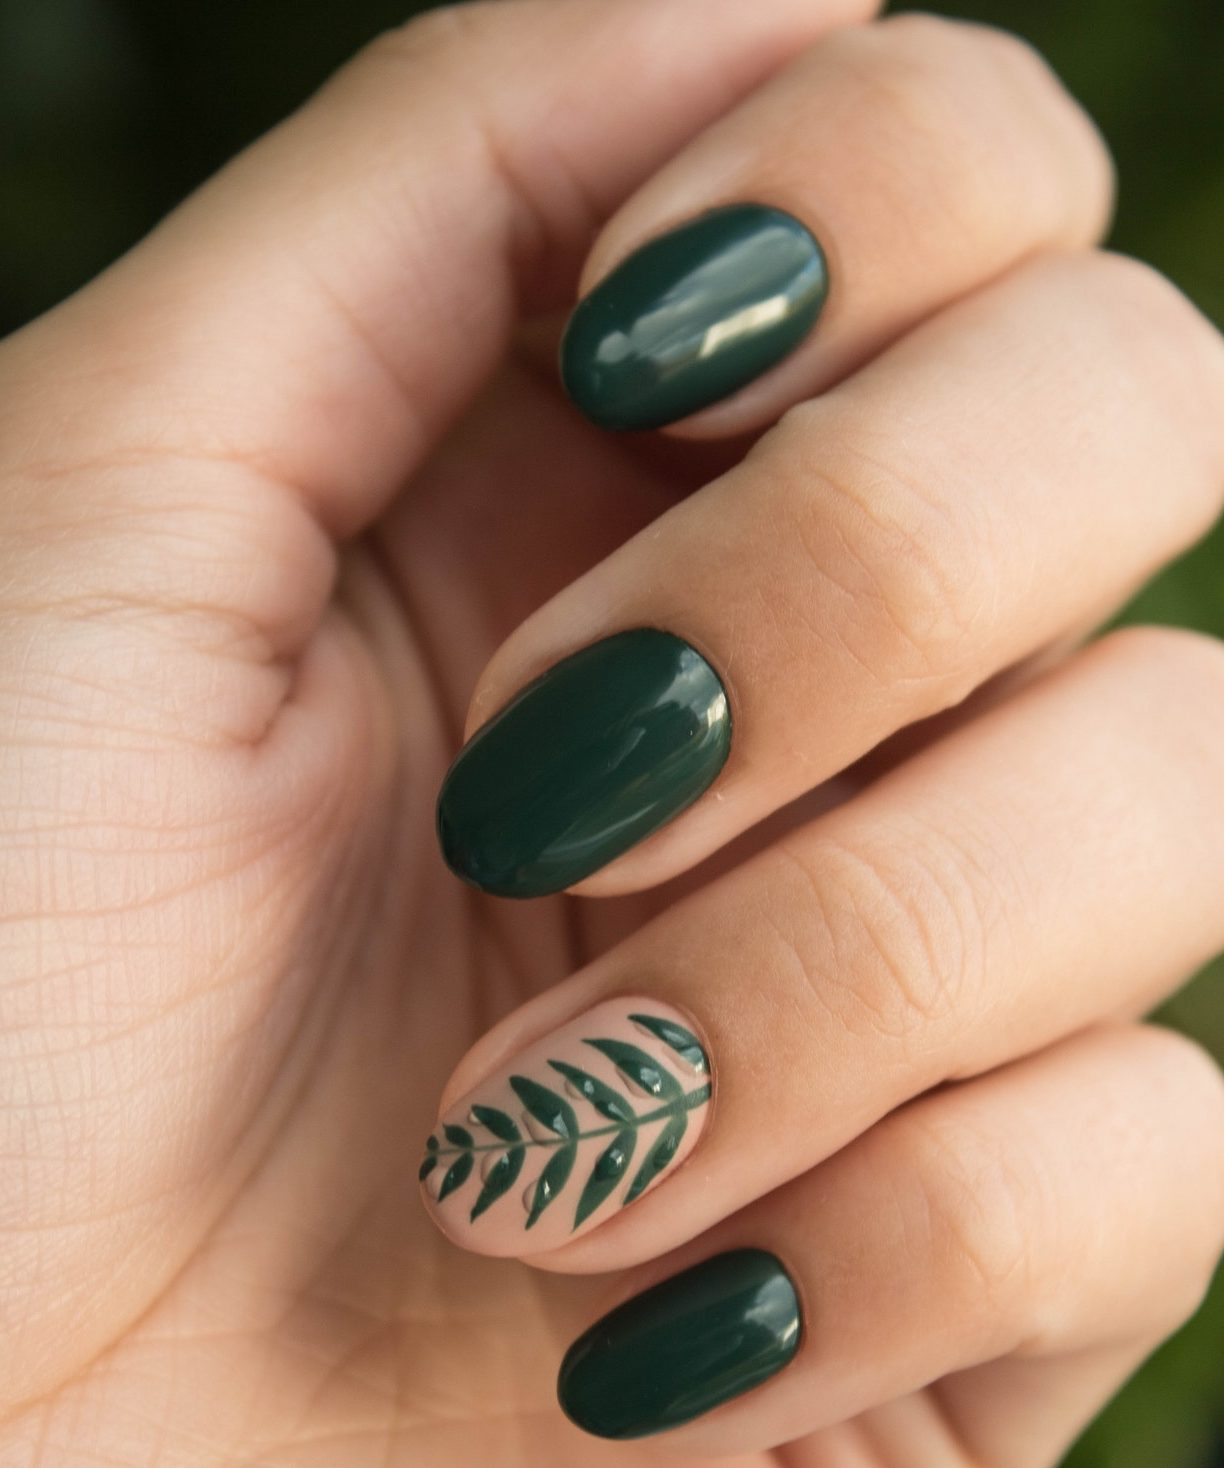 5 Nail Art Trends For Fall